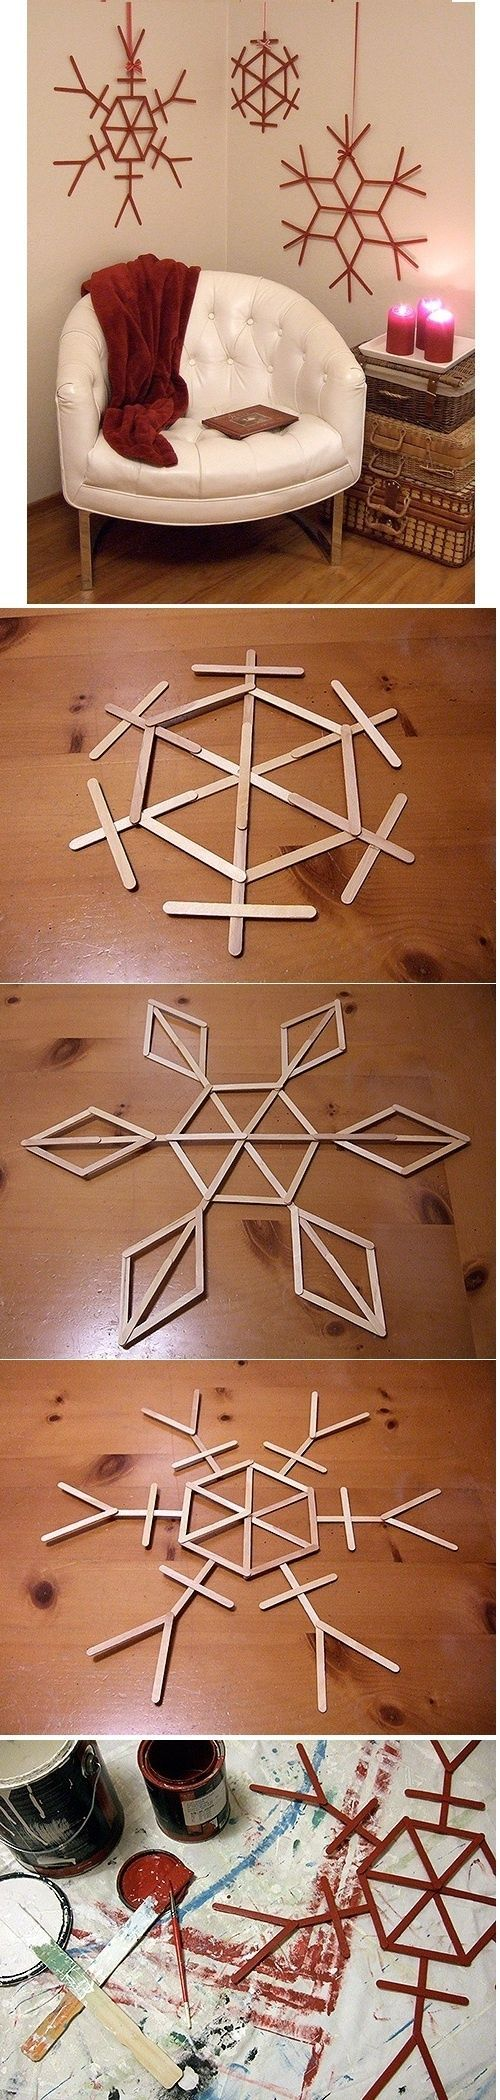 DIY Popsicle Stick Snowflakes DIY Projects / UsefulDIY.com